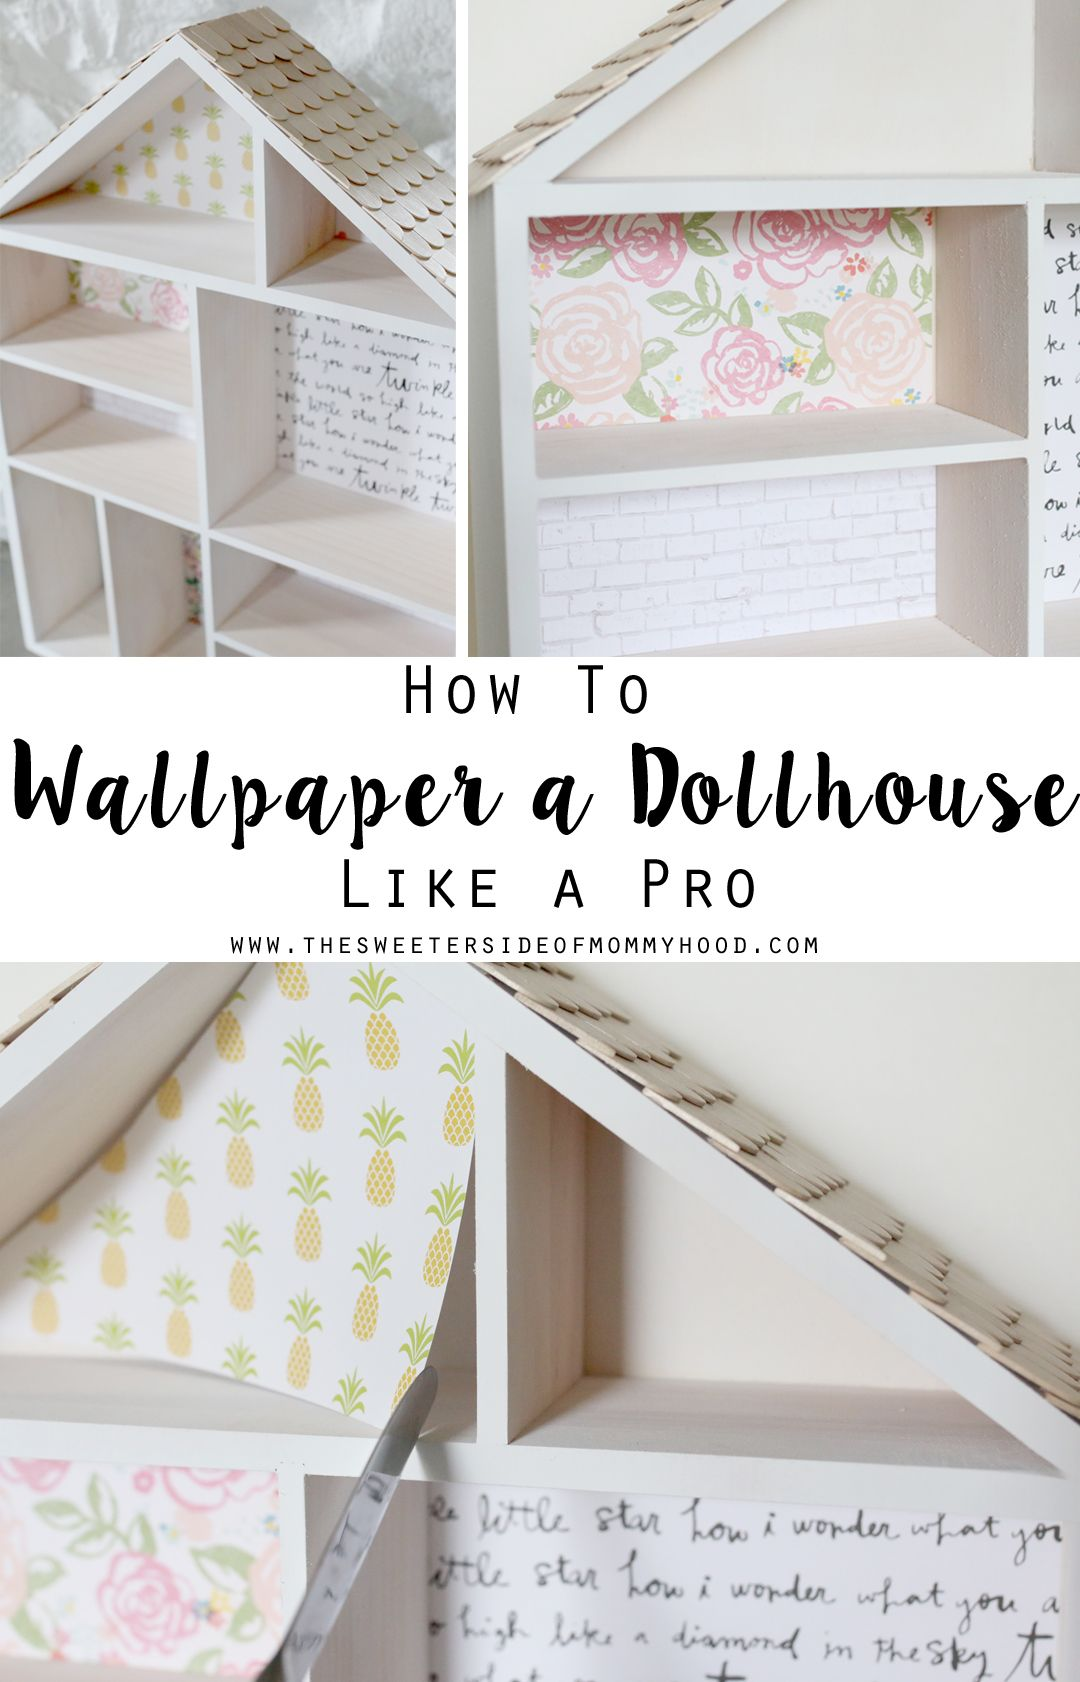 Diy Dollhouse Part 2 How To Wallpaper A Dollhouse Like A